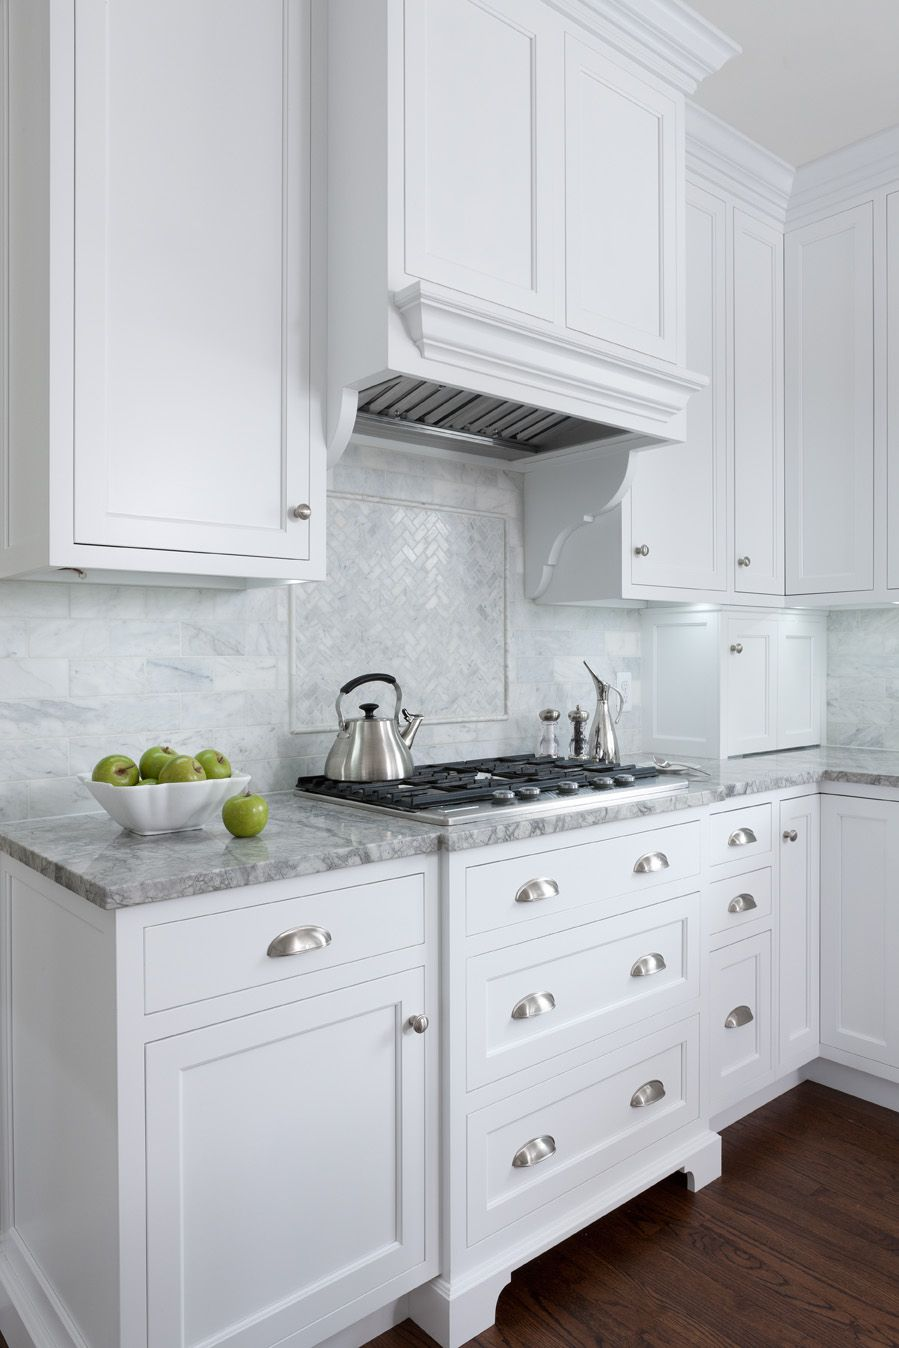 White inset super white counters, marble